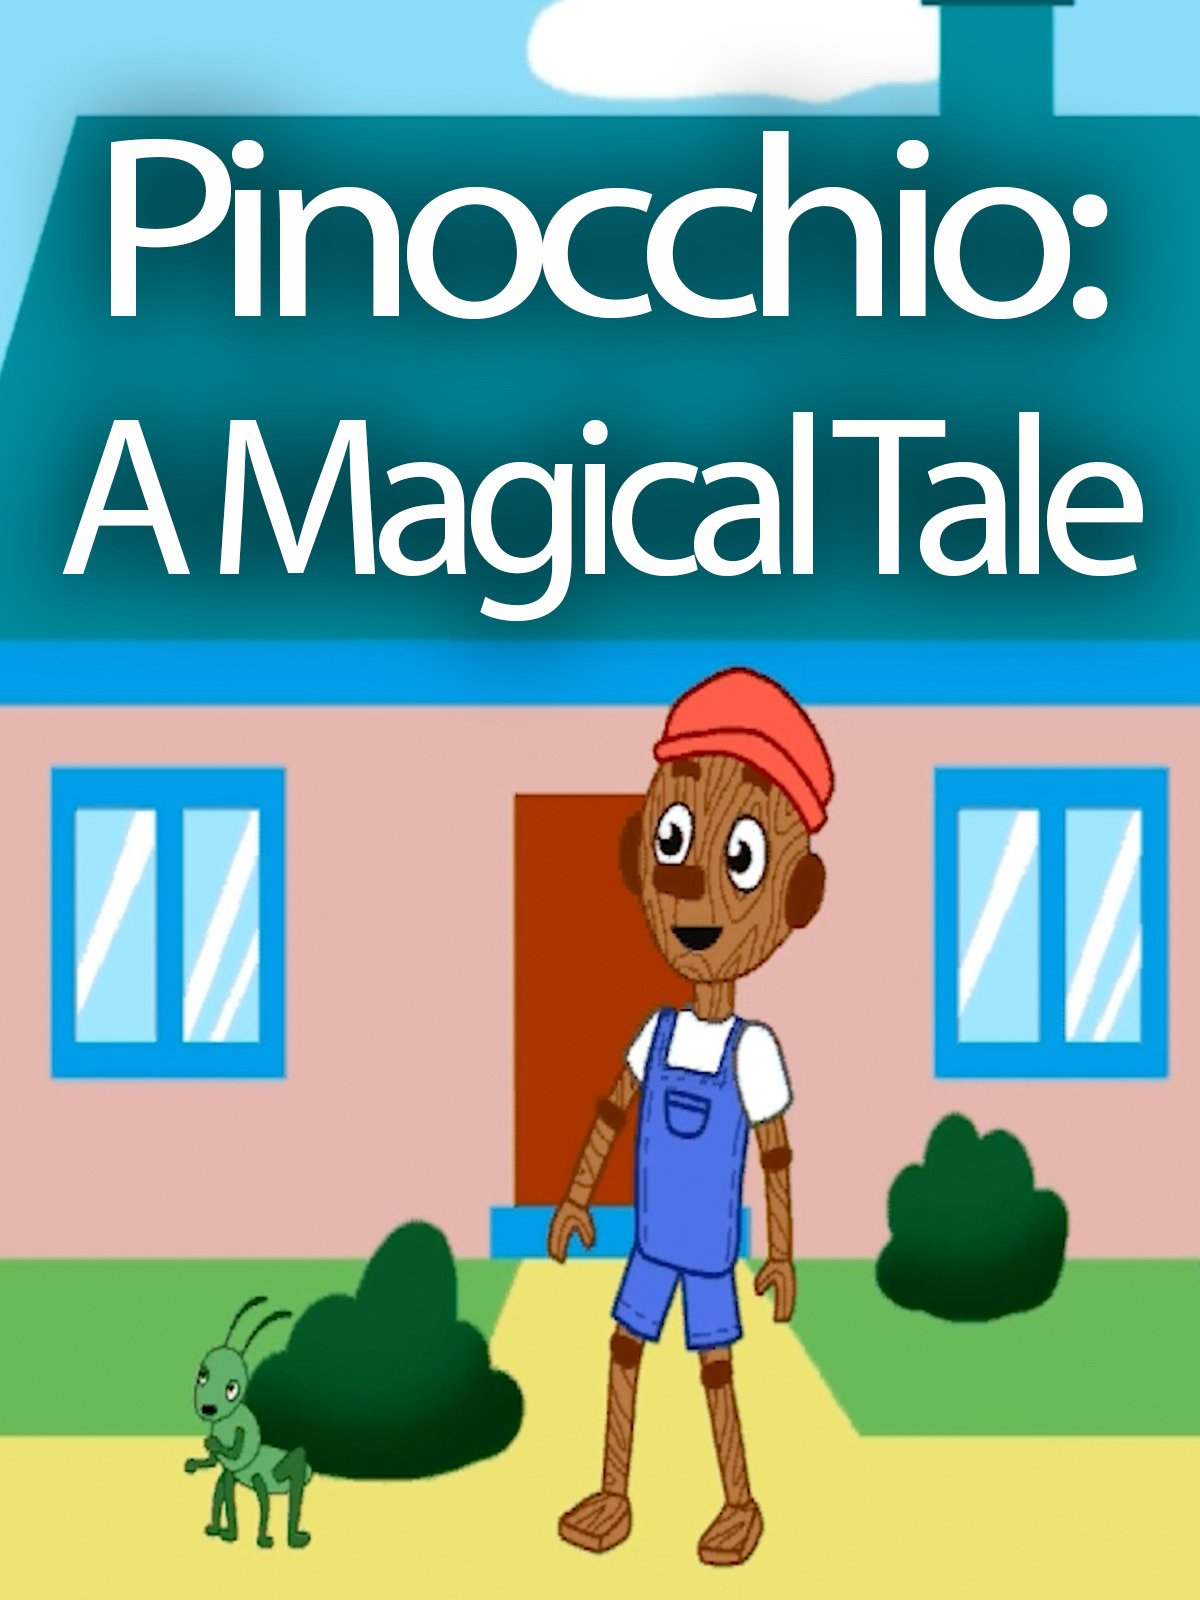 Pinocchio: A Magical Tale on Amazon Prime Video UK